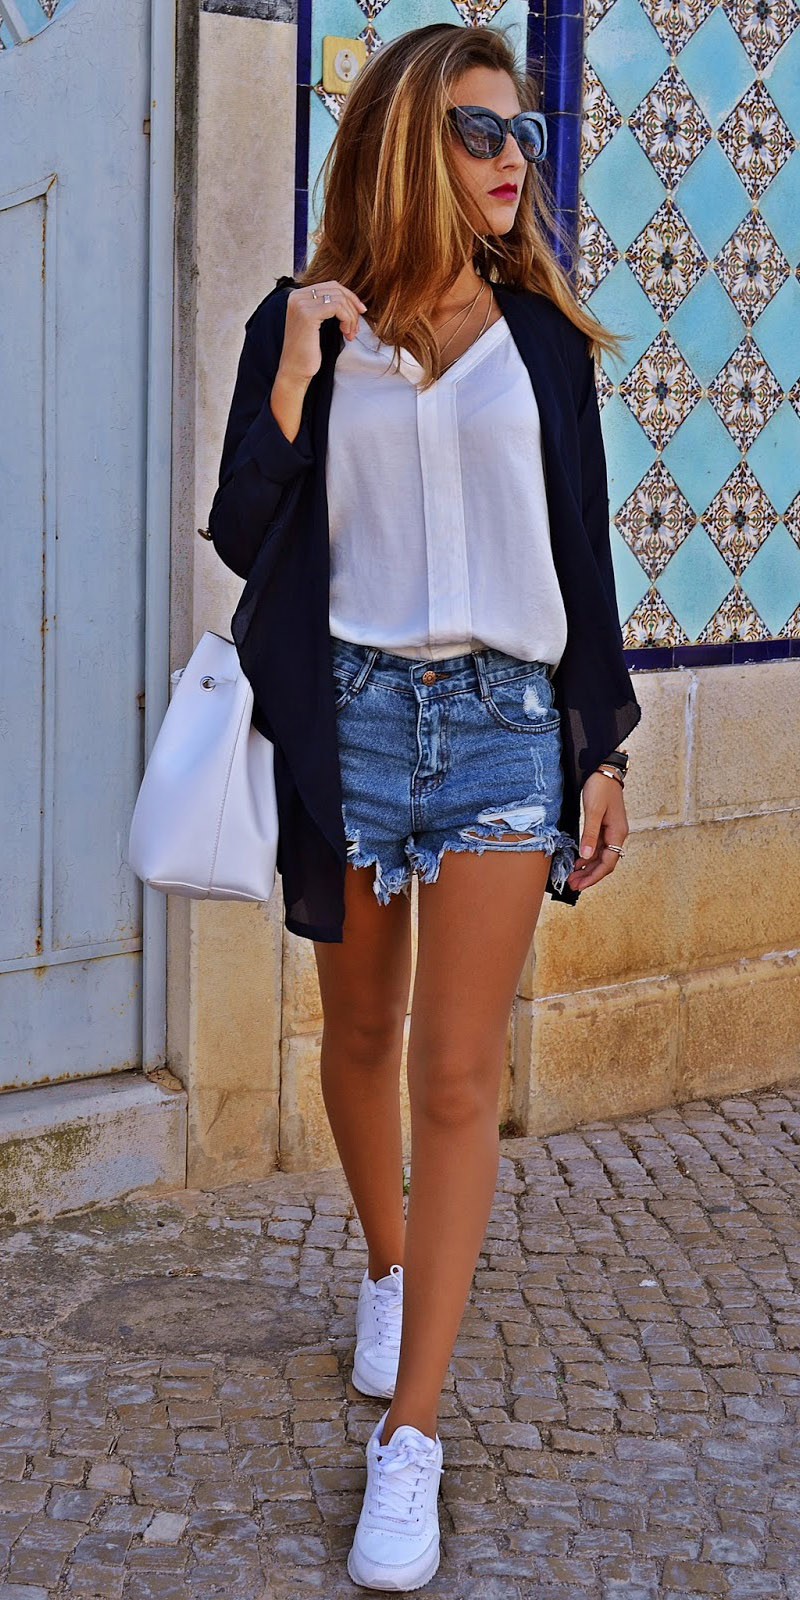 blue-med-shorts-denim-white-top-blouse-black-cardiganl-white-bag-white-shoe-sneakers-hairr-sun-spring-summer-weekend.jpg